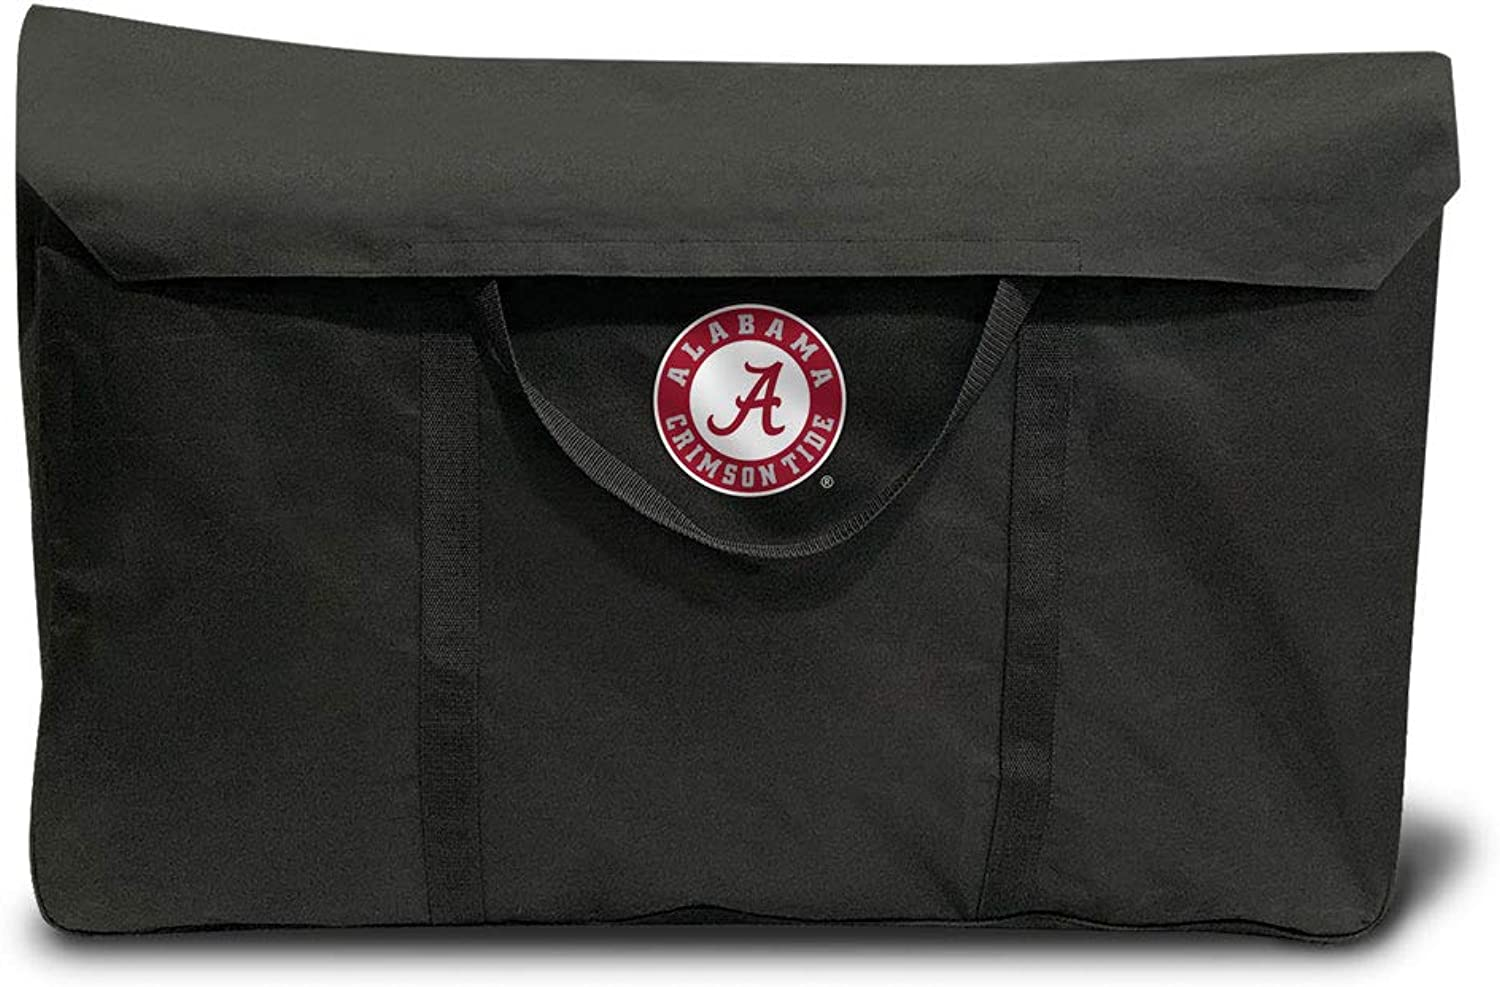 Proline NCAA College 2' x 3' Cornhole Carrying Case (Tailgate Size)